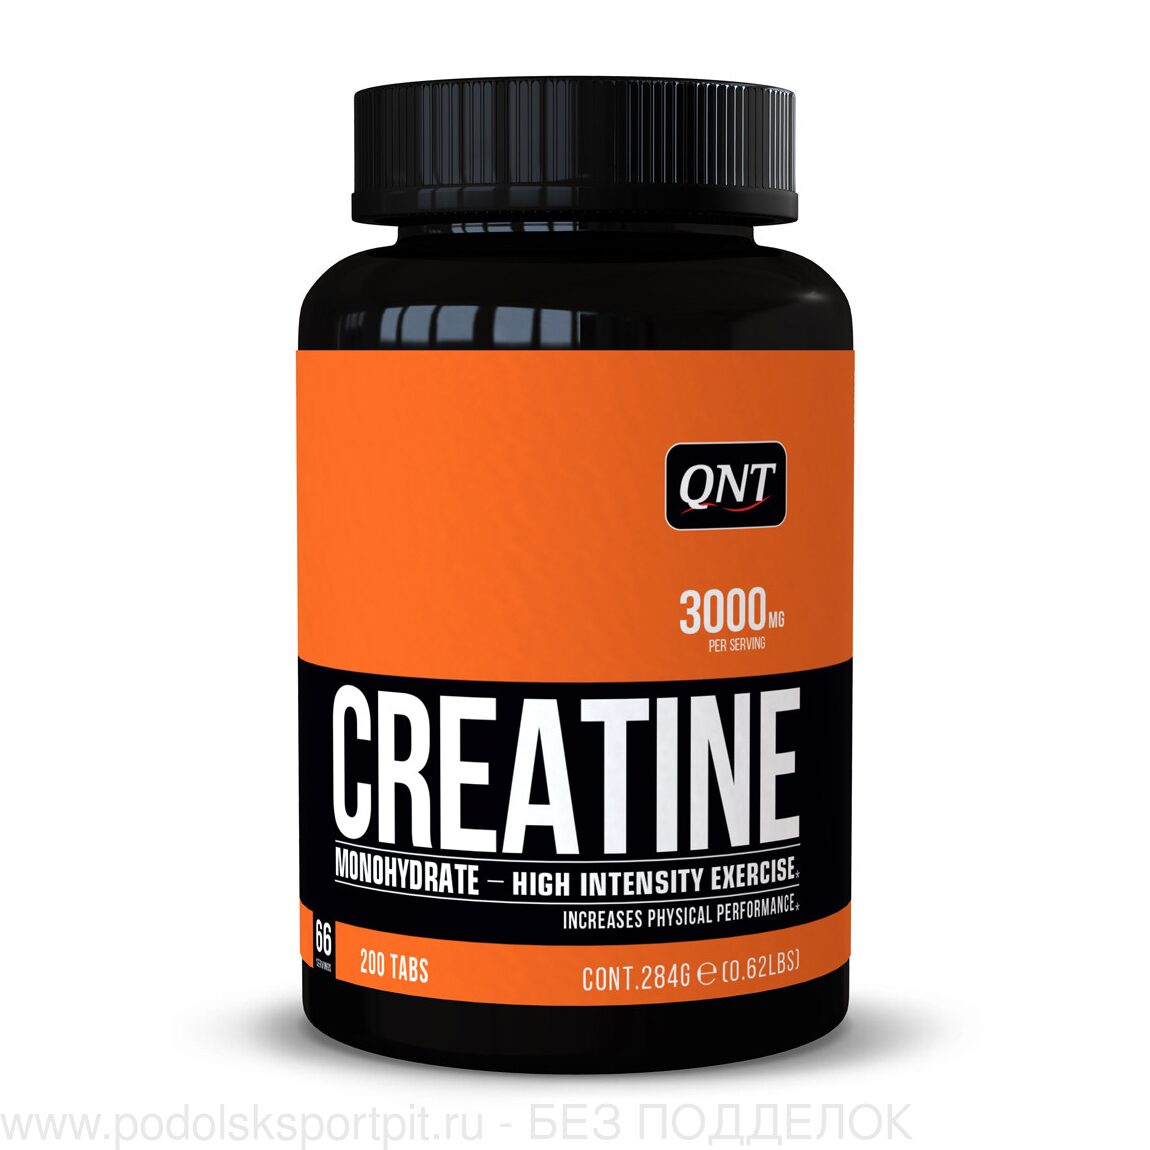 QNT CREATINE MONOHYDRATE, 200 TABS